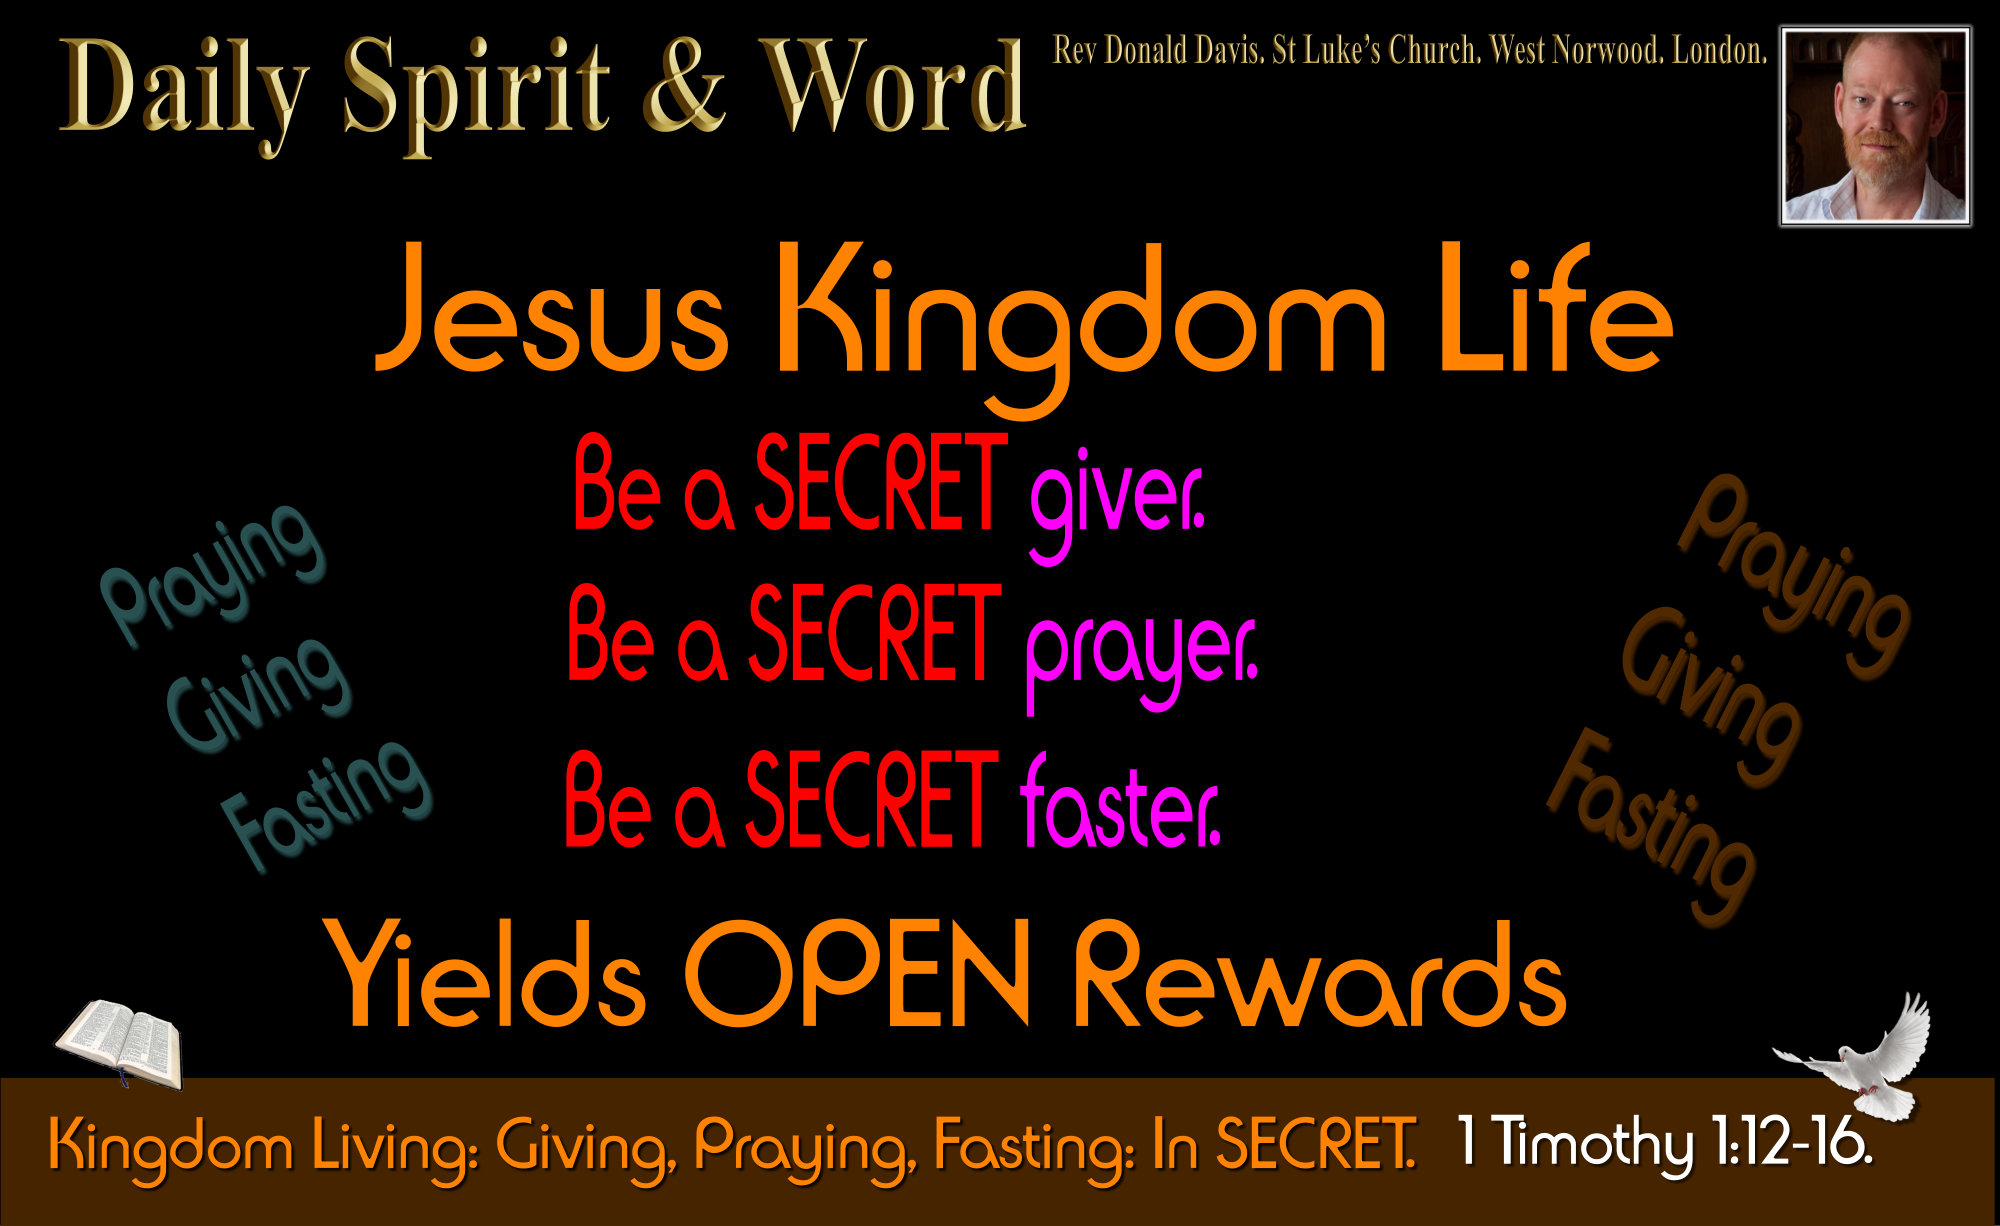 through faith in Jesus you will become His secret change agents in this world